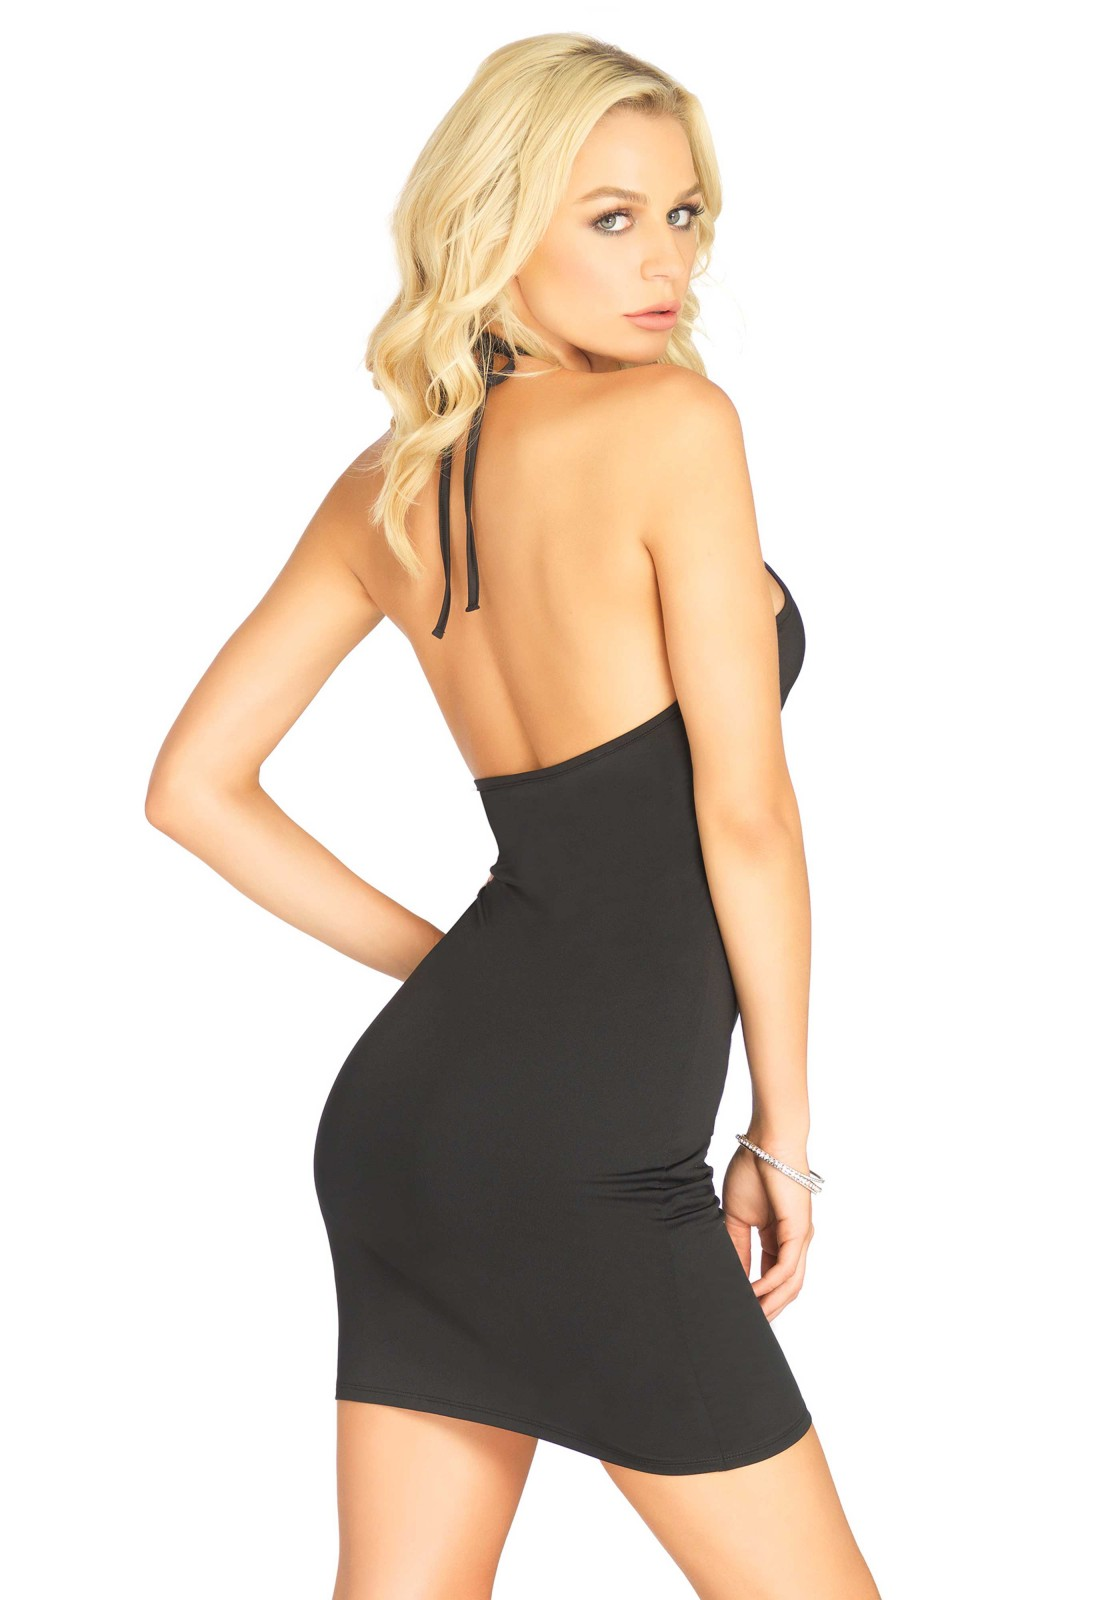 Dress Victoria is a spandex ruched bodycon dress with a contrast lace halter.  The length measured from the shoulder is 80 cm/ 31.5 inch. The model has a length of 182 cm/ 70 inch and is wearing a size S.